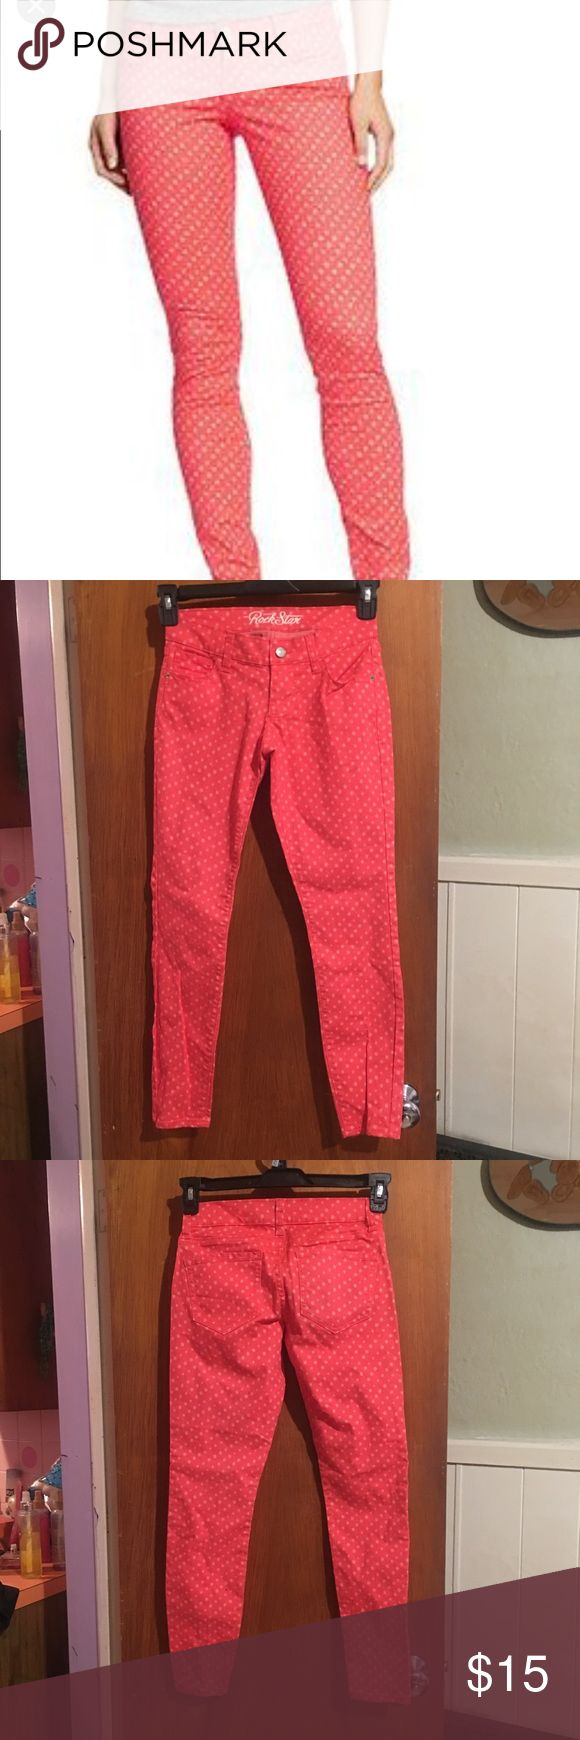 NWOT Polka dot skinny jeans sz 2 New no tags Old Navy stretchy orange skinny jeans with pink polka dot print sz 2 short. -ankle length Waist is 26 inches  Inseam 27  @LF @urban outfitters @dolls kill @unif @hot topic @minkpink @free people @lip service Old Navy Jeans Skinny